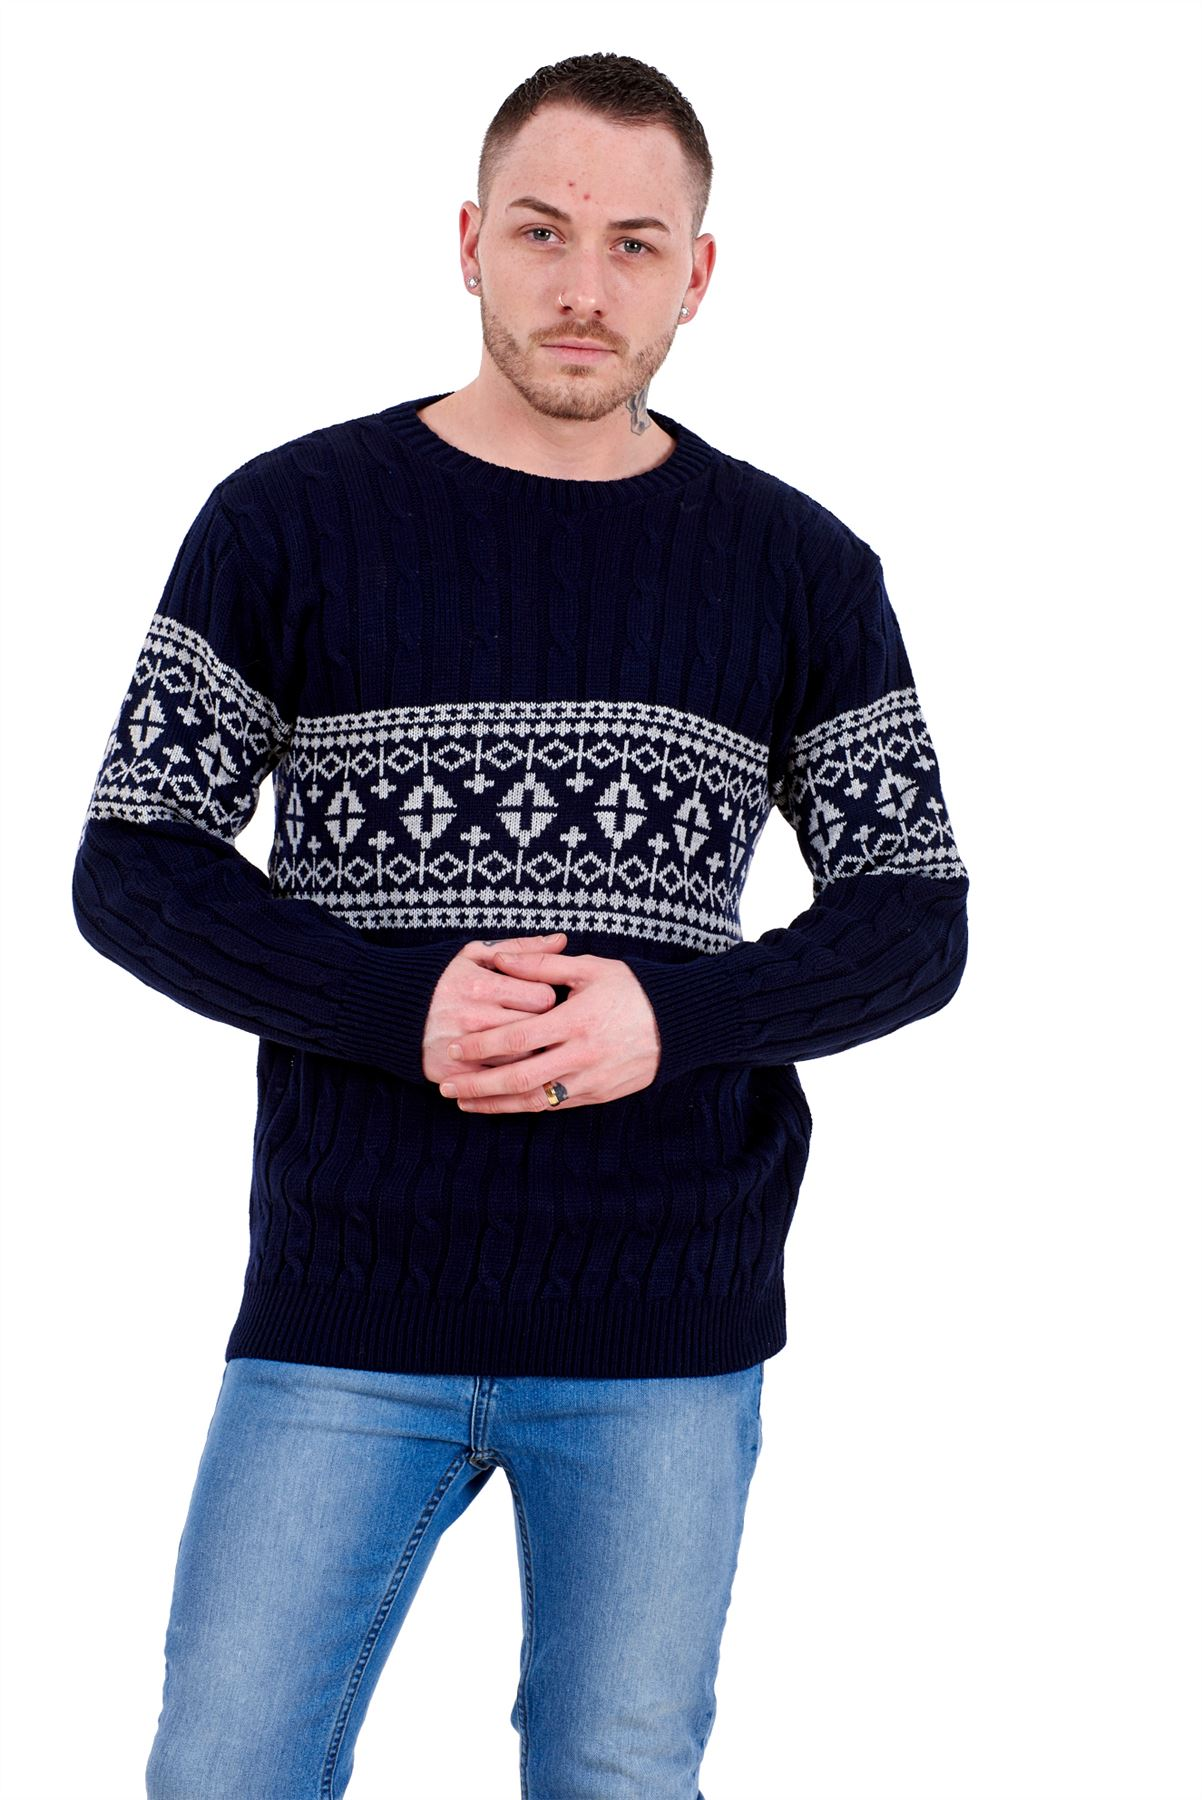 Mens-New-Cable-Knit-Jacquard-Long-Sleeve-Pullover-Jumper-Sweater-S-to-XL thumbnail 19